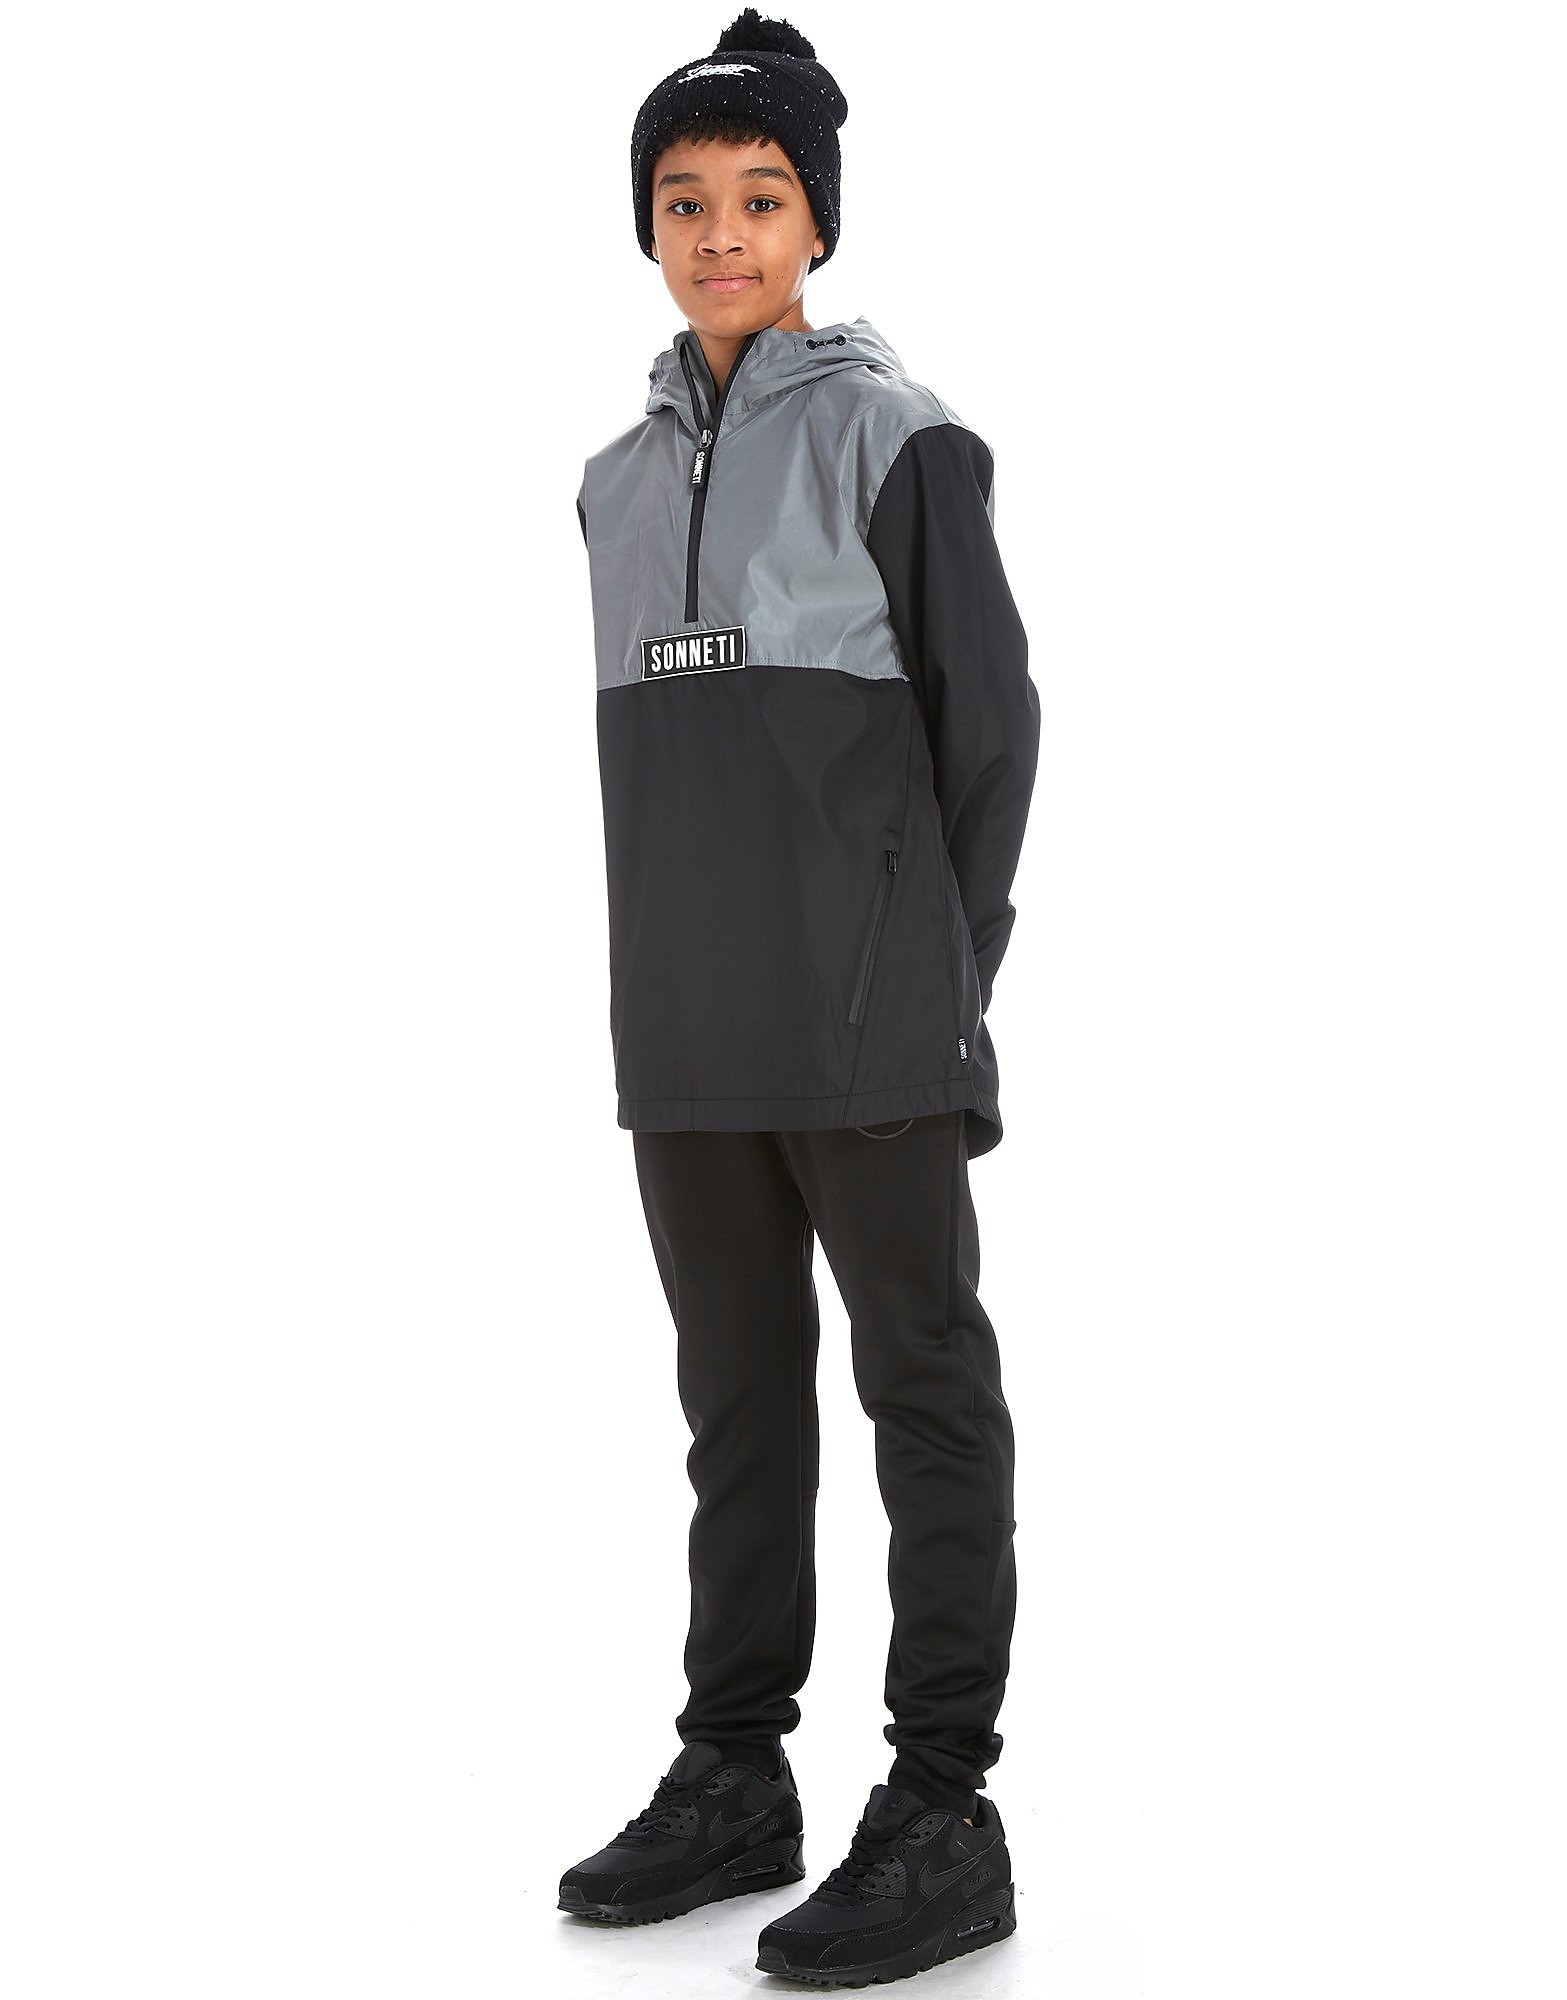 Sonneti Cyber 1/2 Zip Overhead Jacket Junior